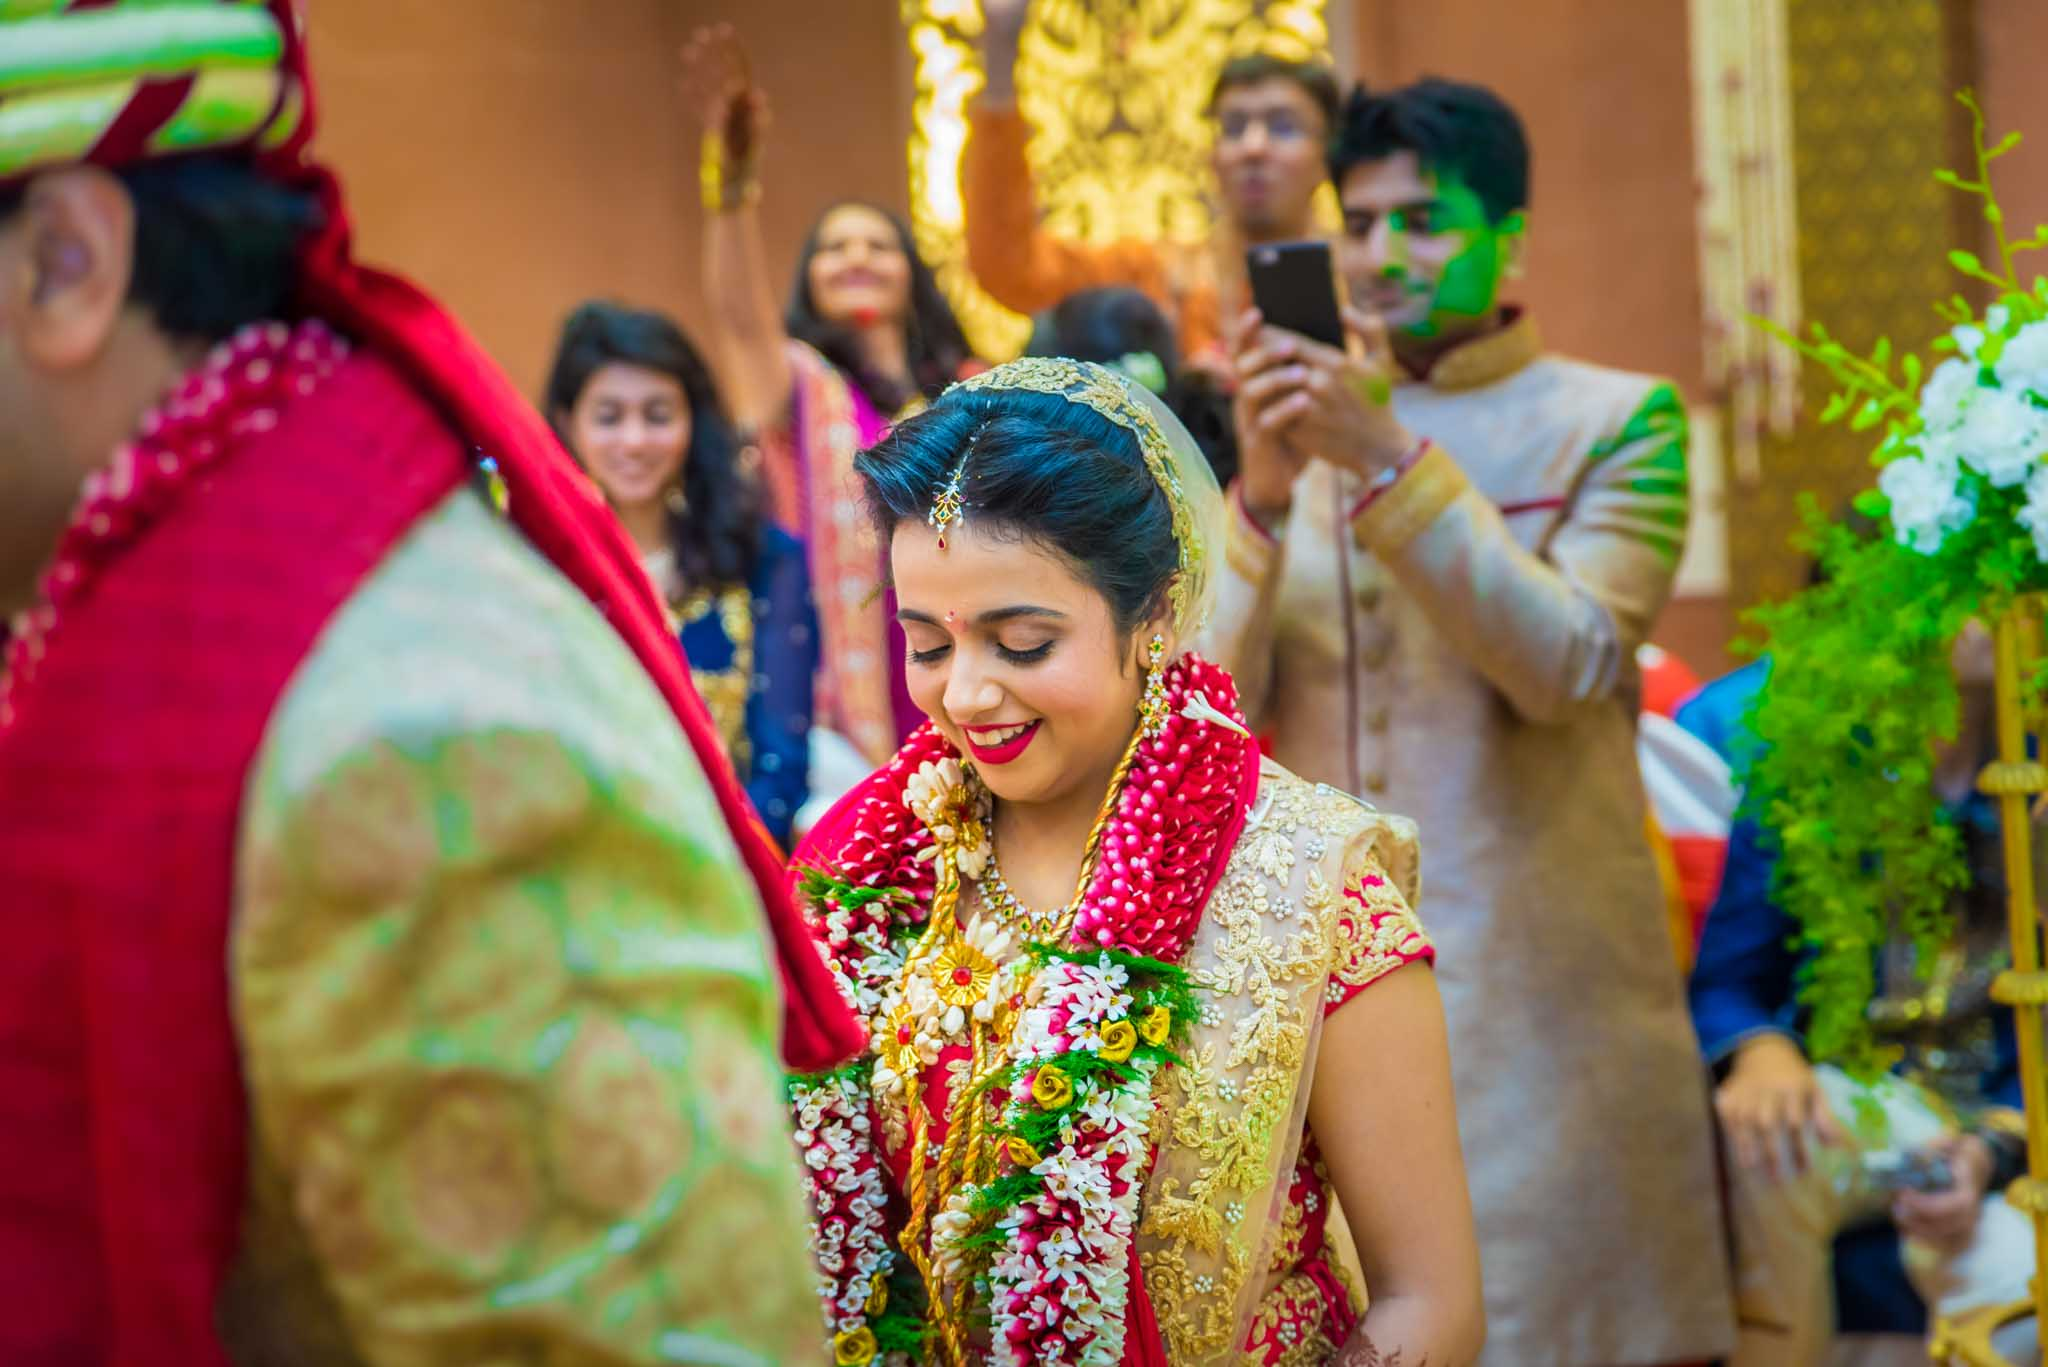 mumbai-candid-photography-wedding-whatknot-kamal-amrohi-studios-44